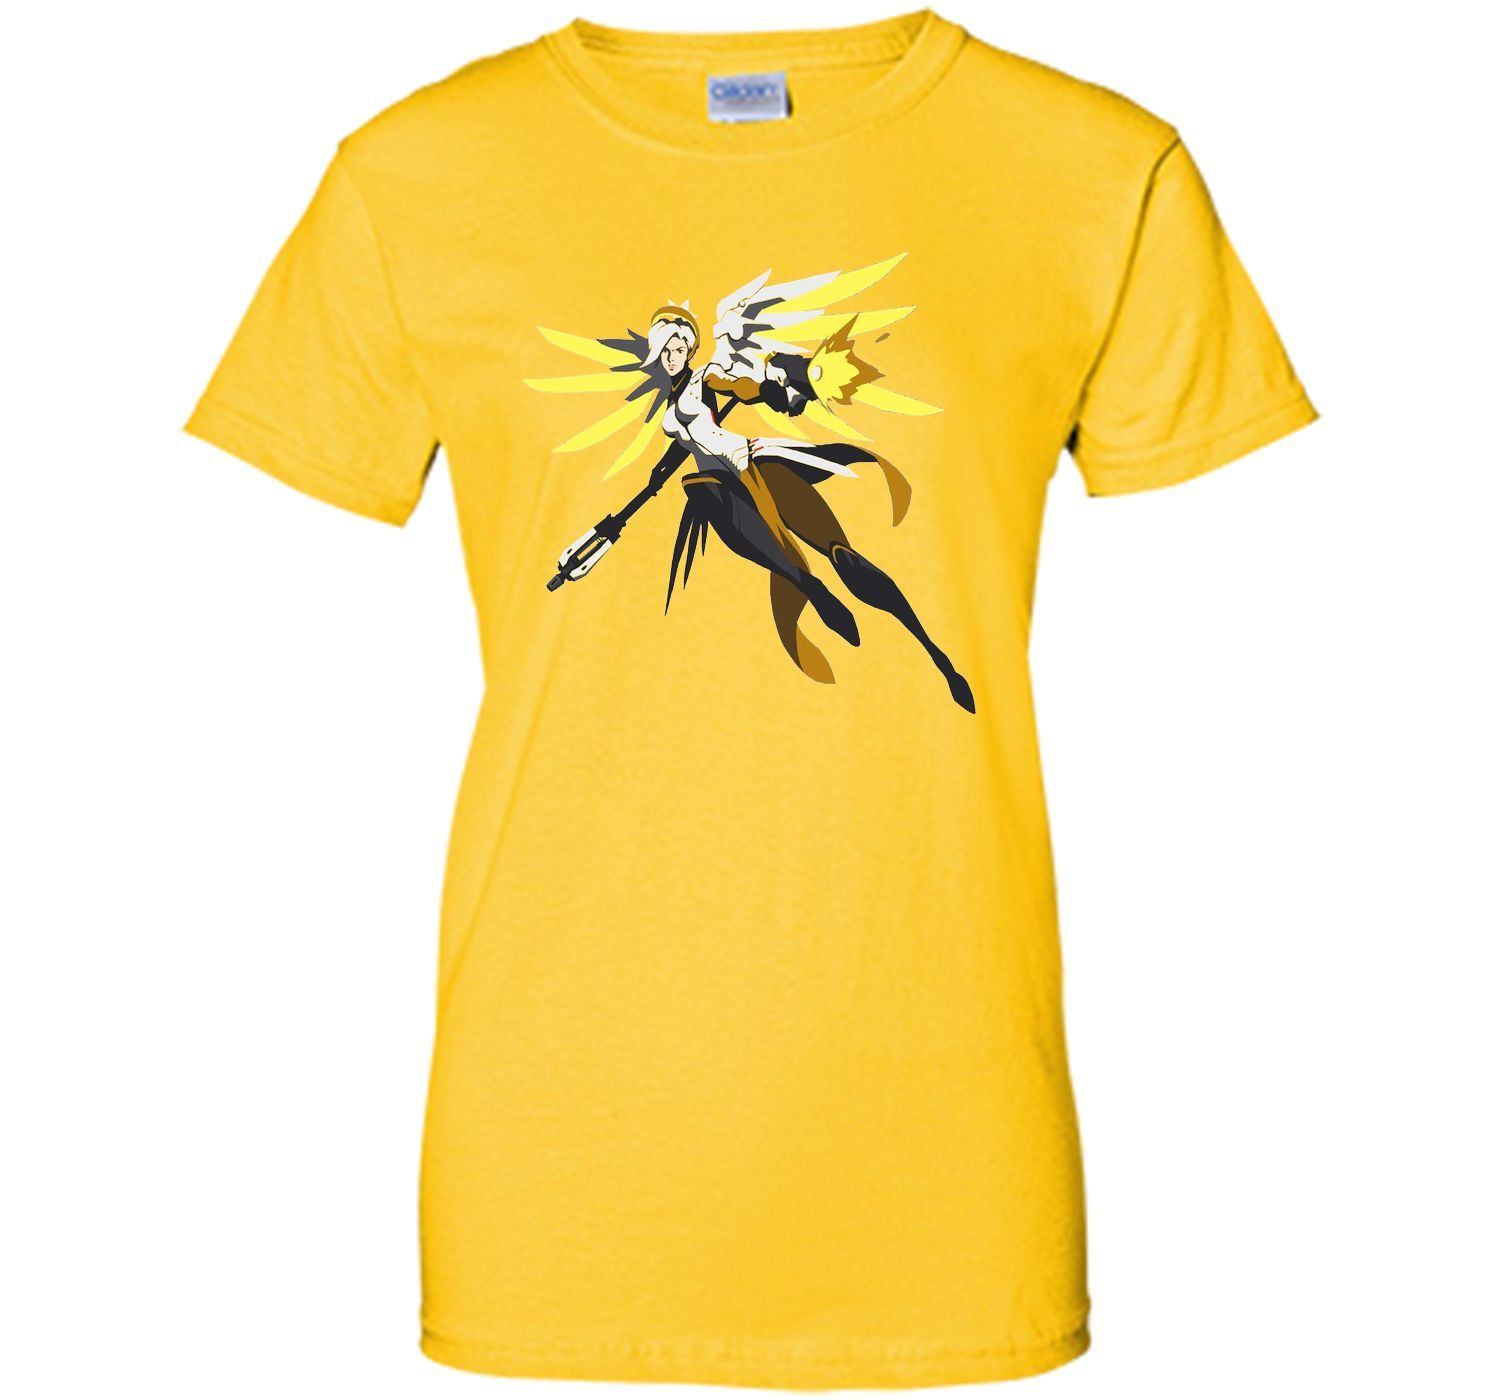 Overwatch Mercy Battle Ready Spray Tee Shirt